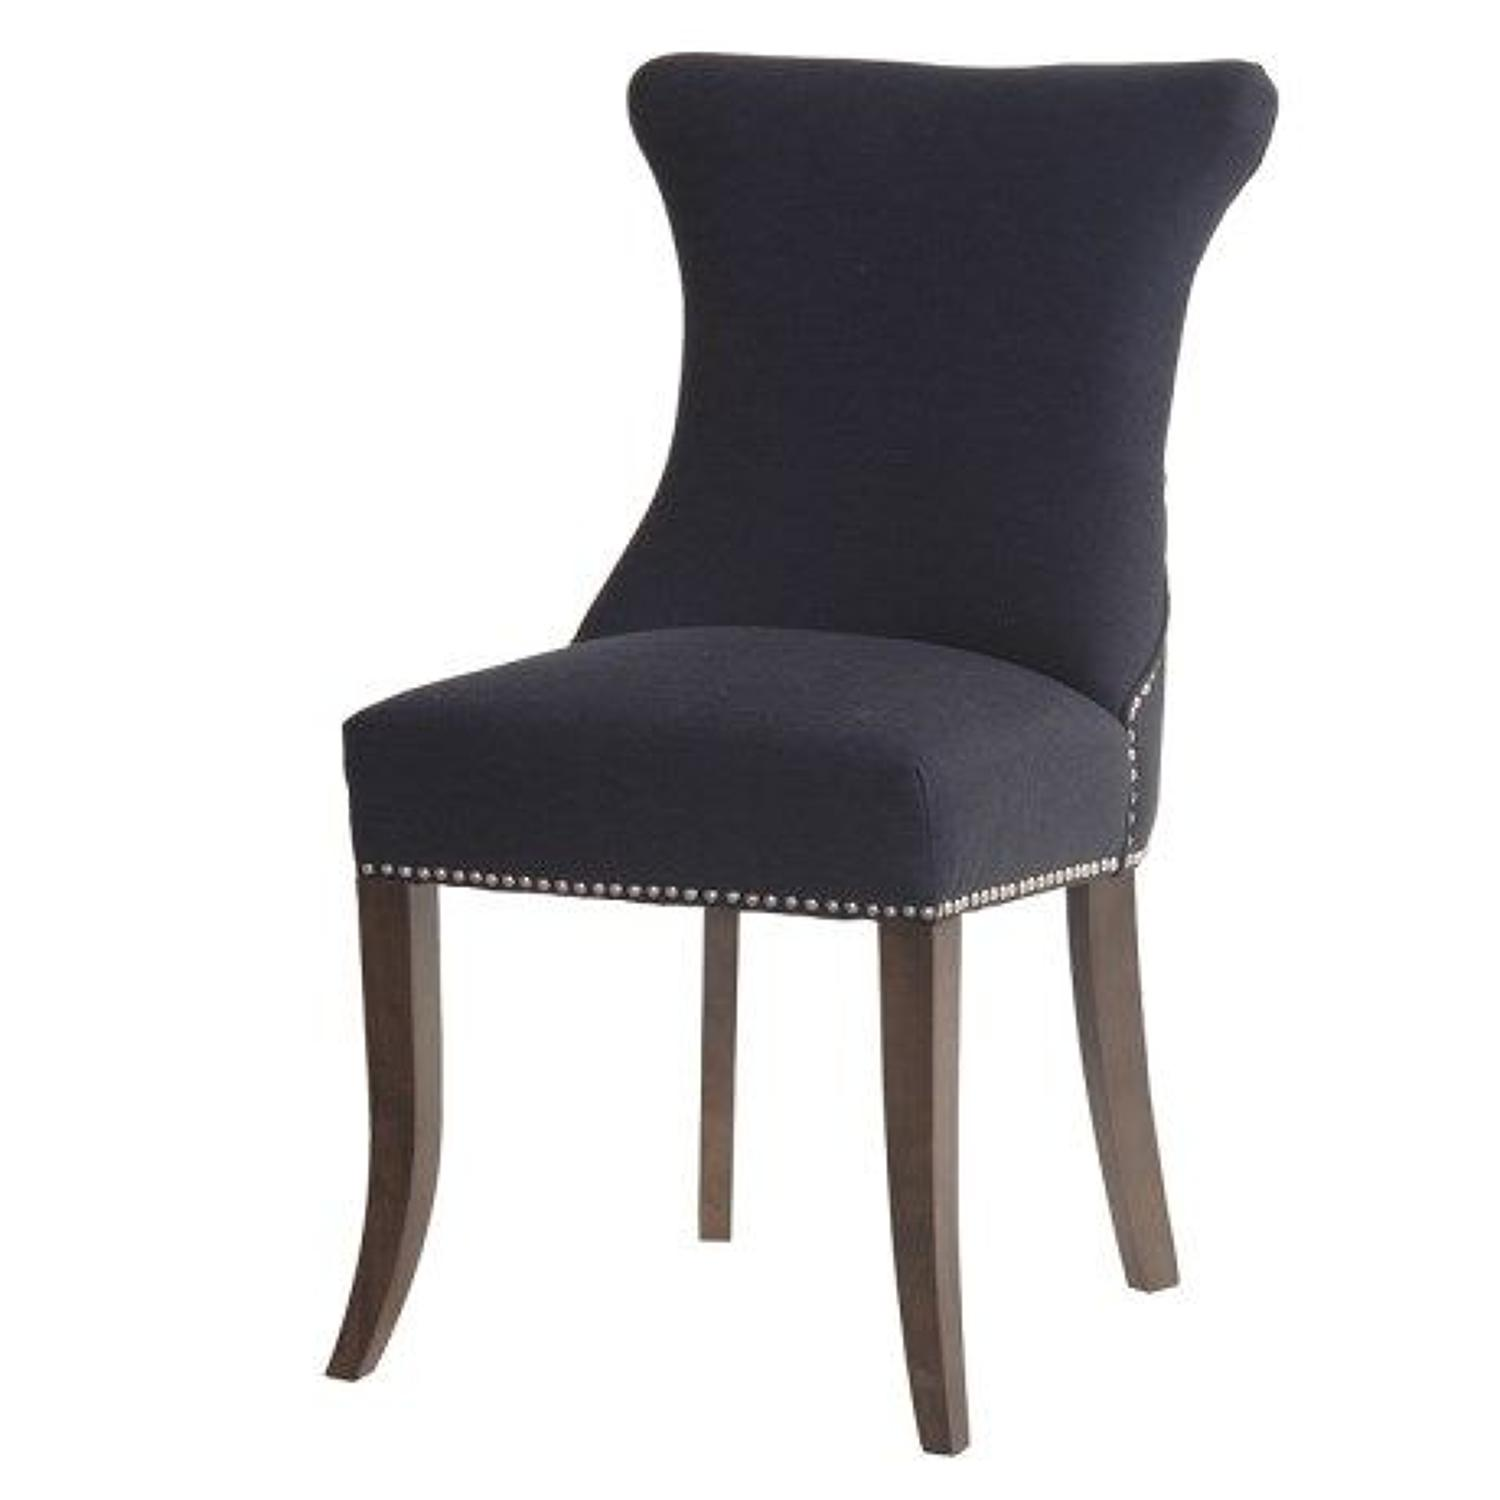 Black studded dining chair with ring back.